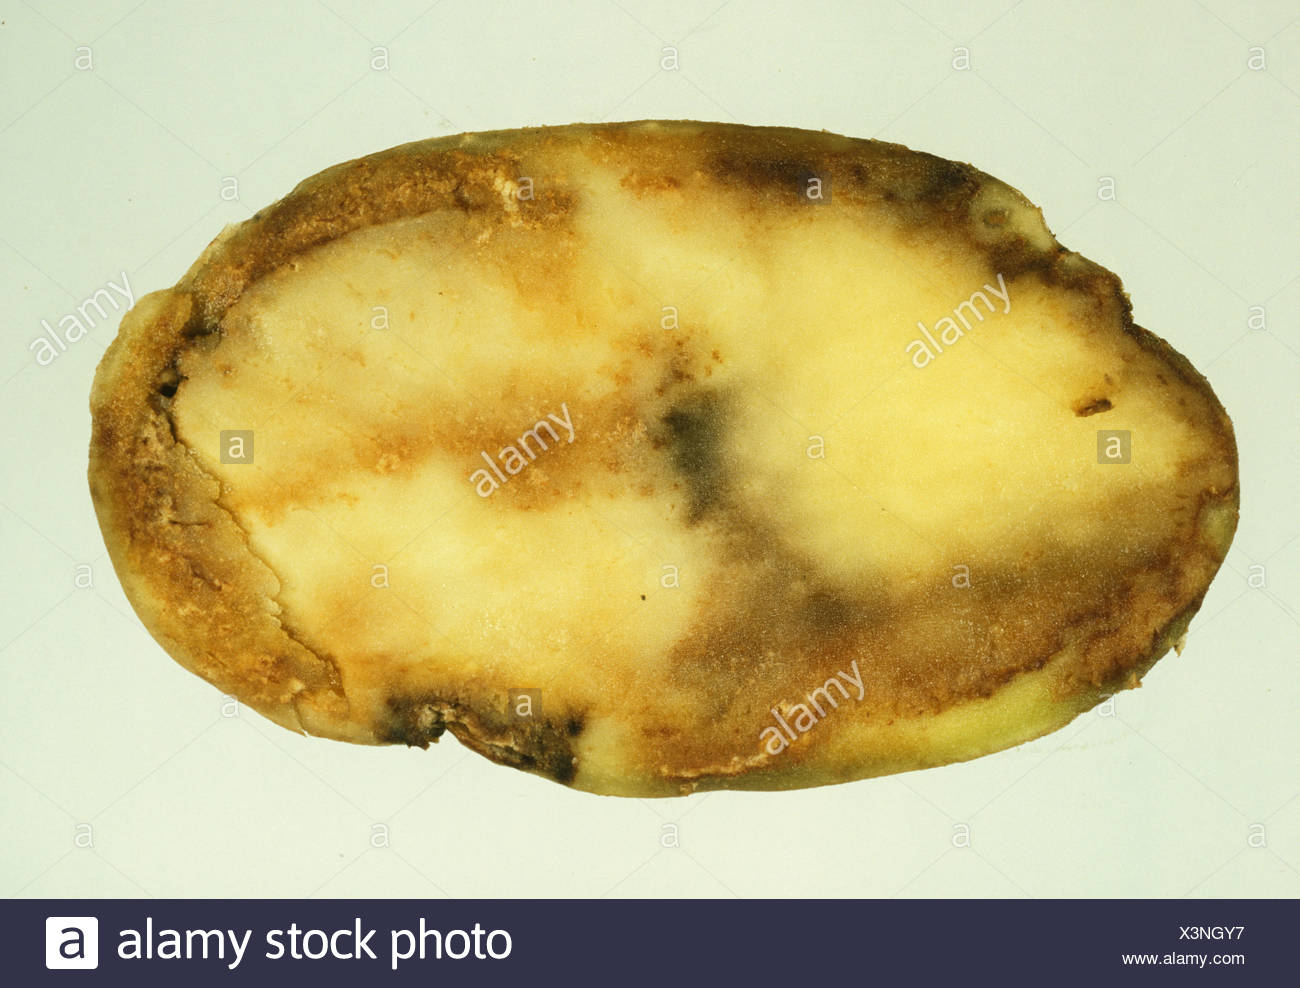 Potato late blight Phytophthora infestans flesh damage in potato section - Stock Image